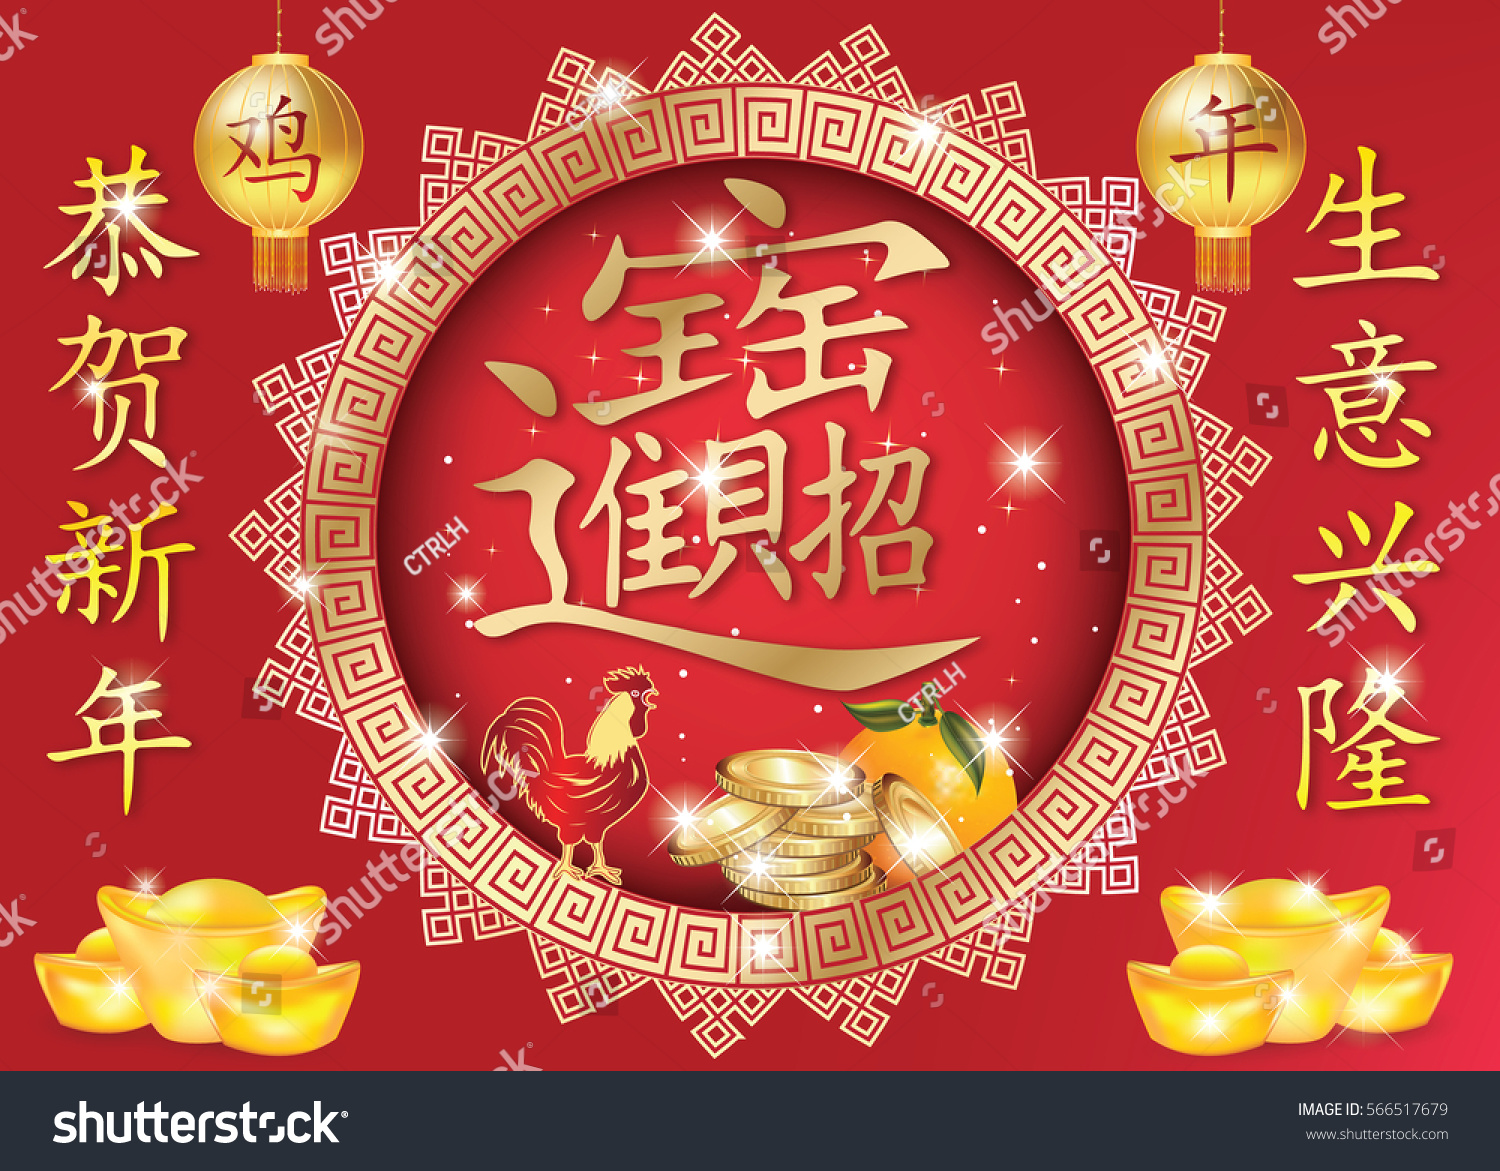 Chinese New Year Rooster Greeting Card Stock Illustration 566517679